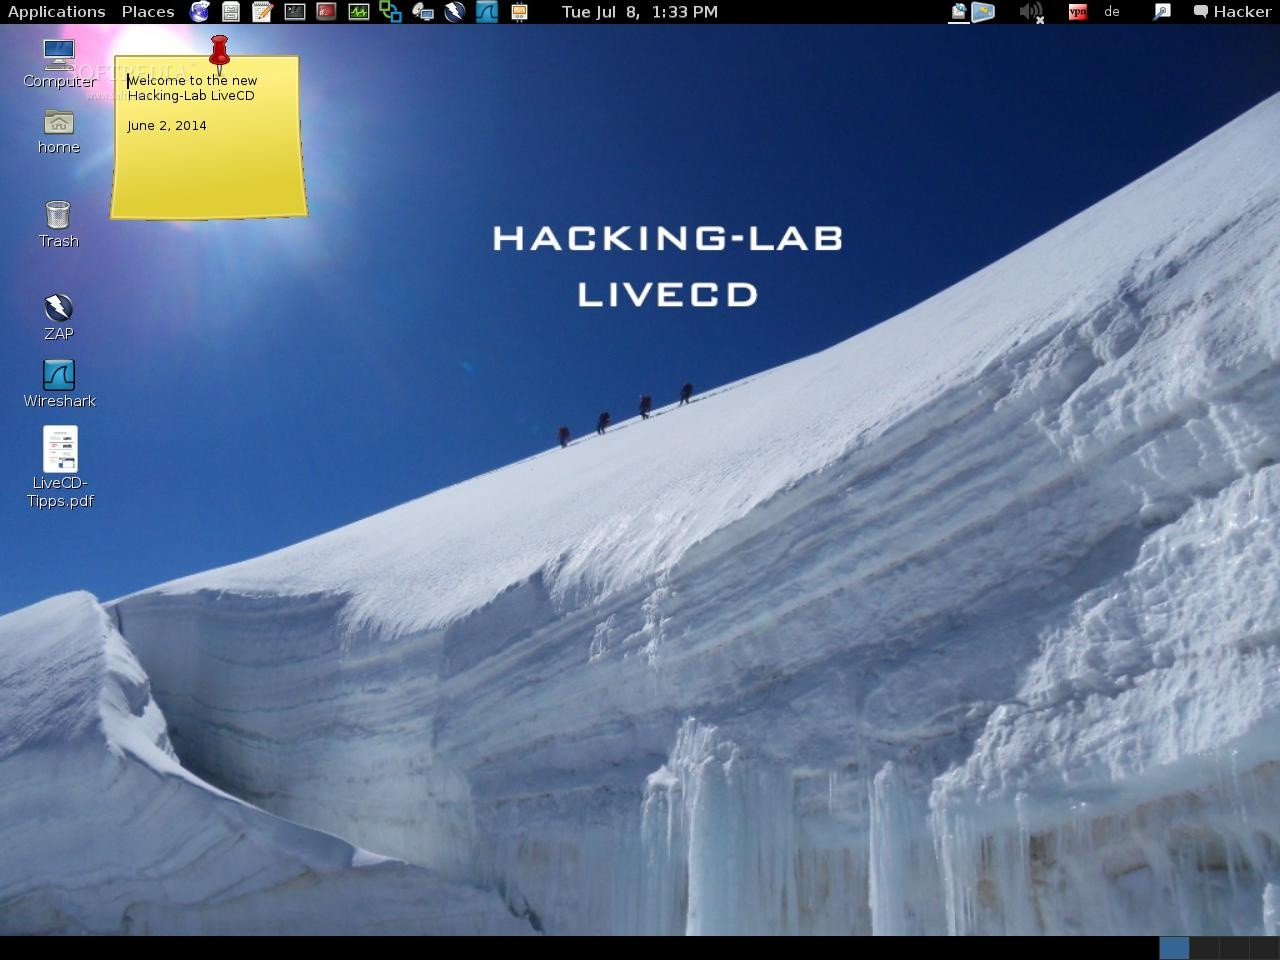 Hacking-Lab LiveCD - The desktop environment of the Hacking-Lab LiveCD oper